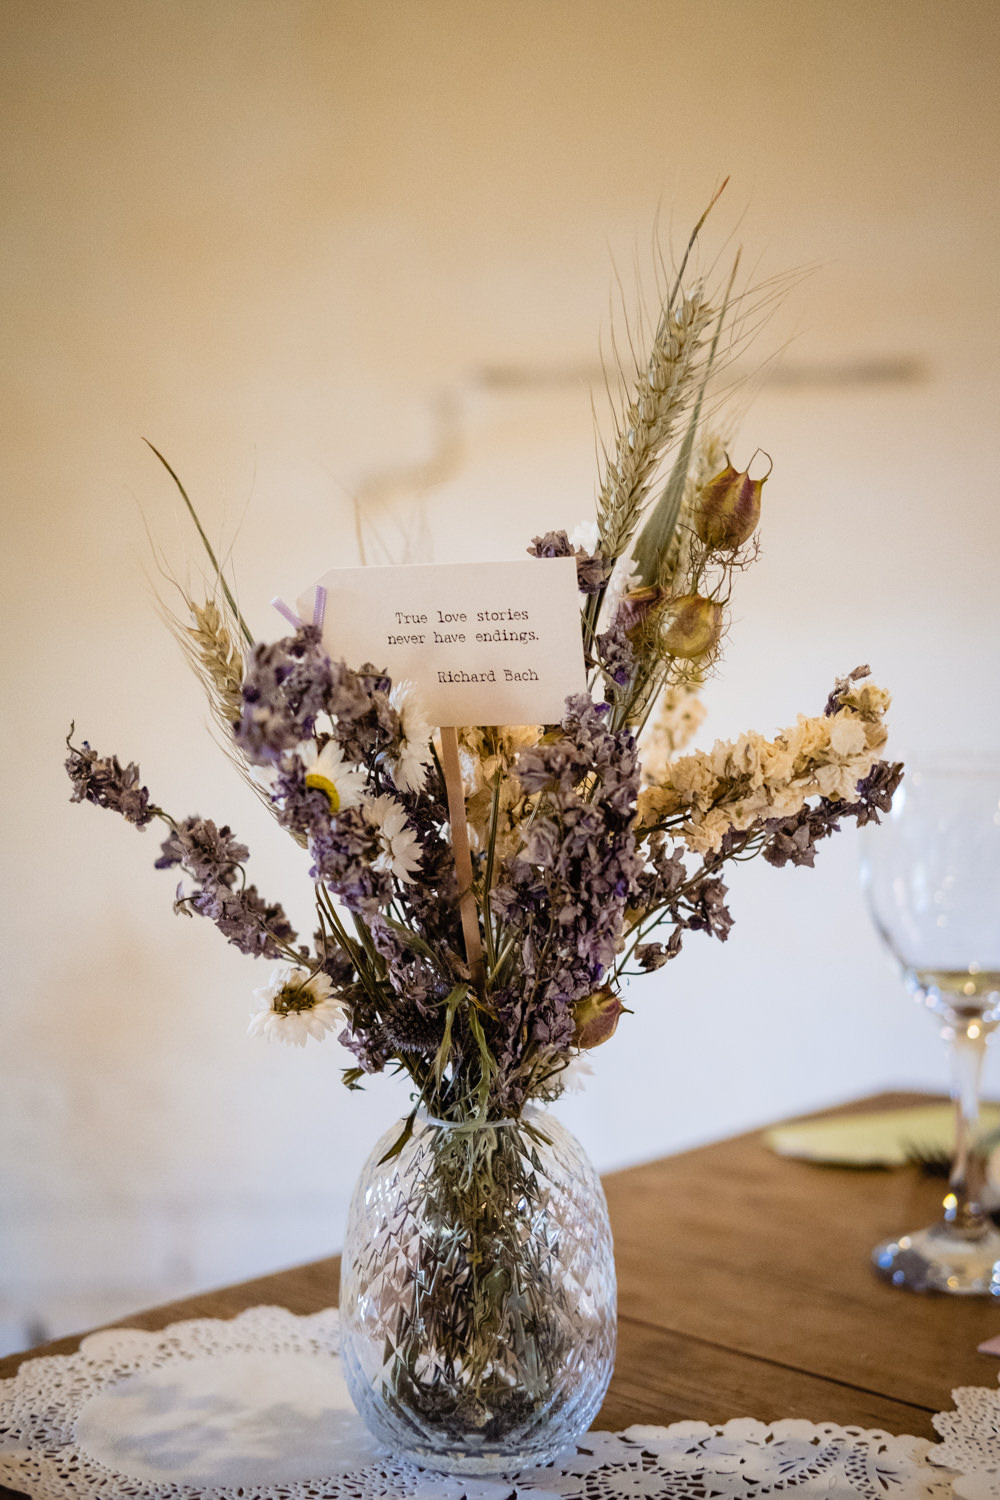 Dried Flowers Lavender Table Bottle Cowshed Woodhall Farm Wedding Emma and Rich